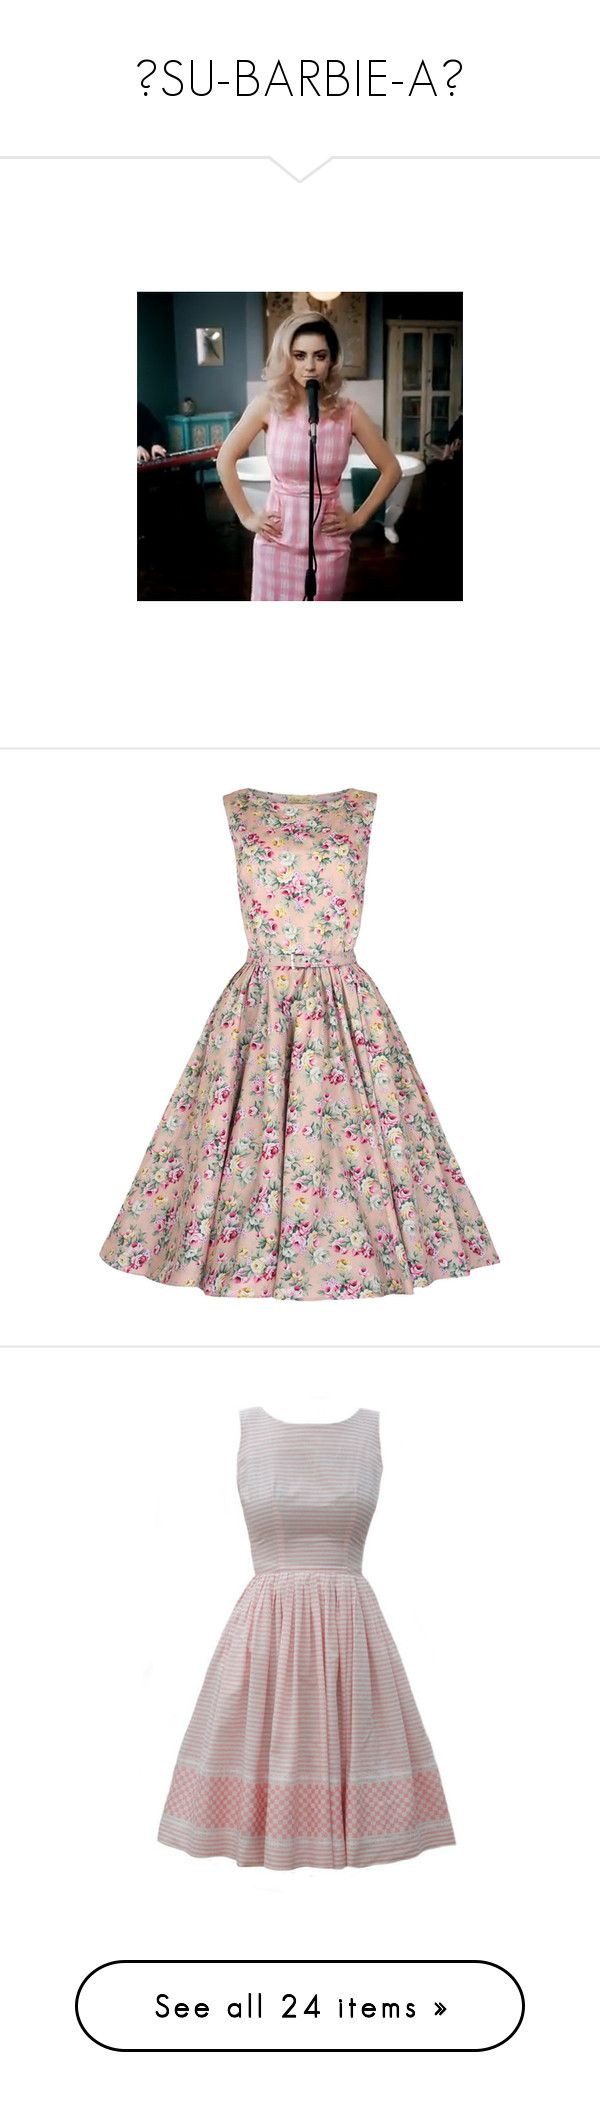 """""""♡SU-BARBIE-A♡"""" by doritos-in-space ❤ liked on Polyvore featuring dresses, vestidos, rockabilly dresses, robes, daisy dress, no sleeve dress, daisy print dress, vintage day dress, vintage cotton dress and cocktail party dress"""